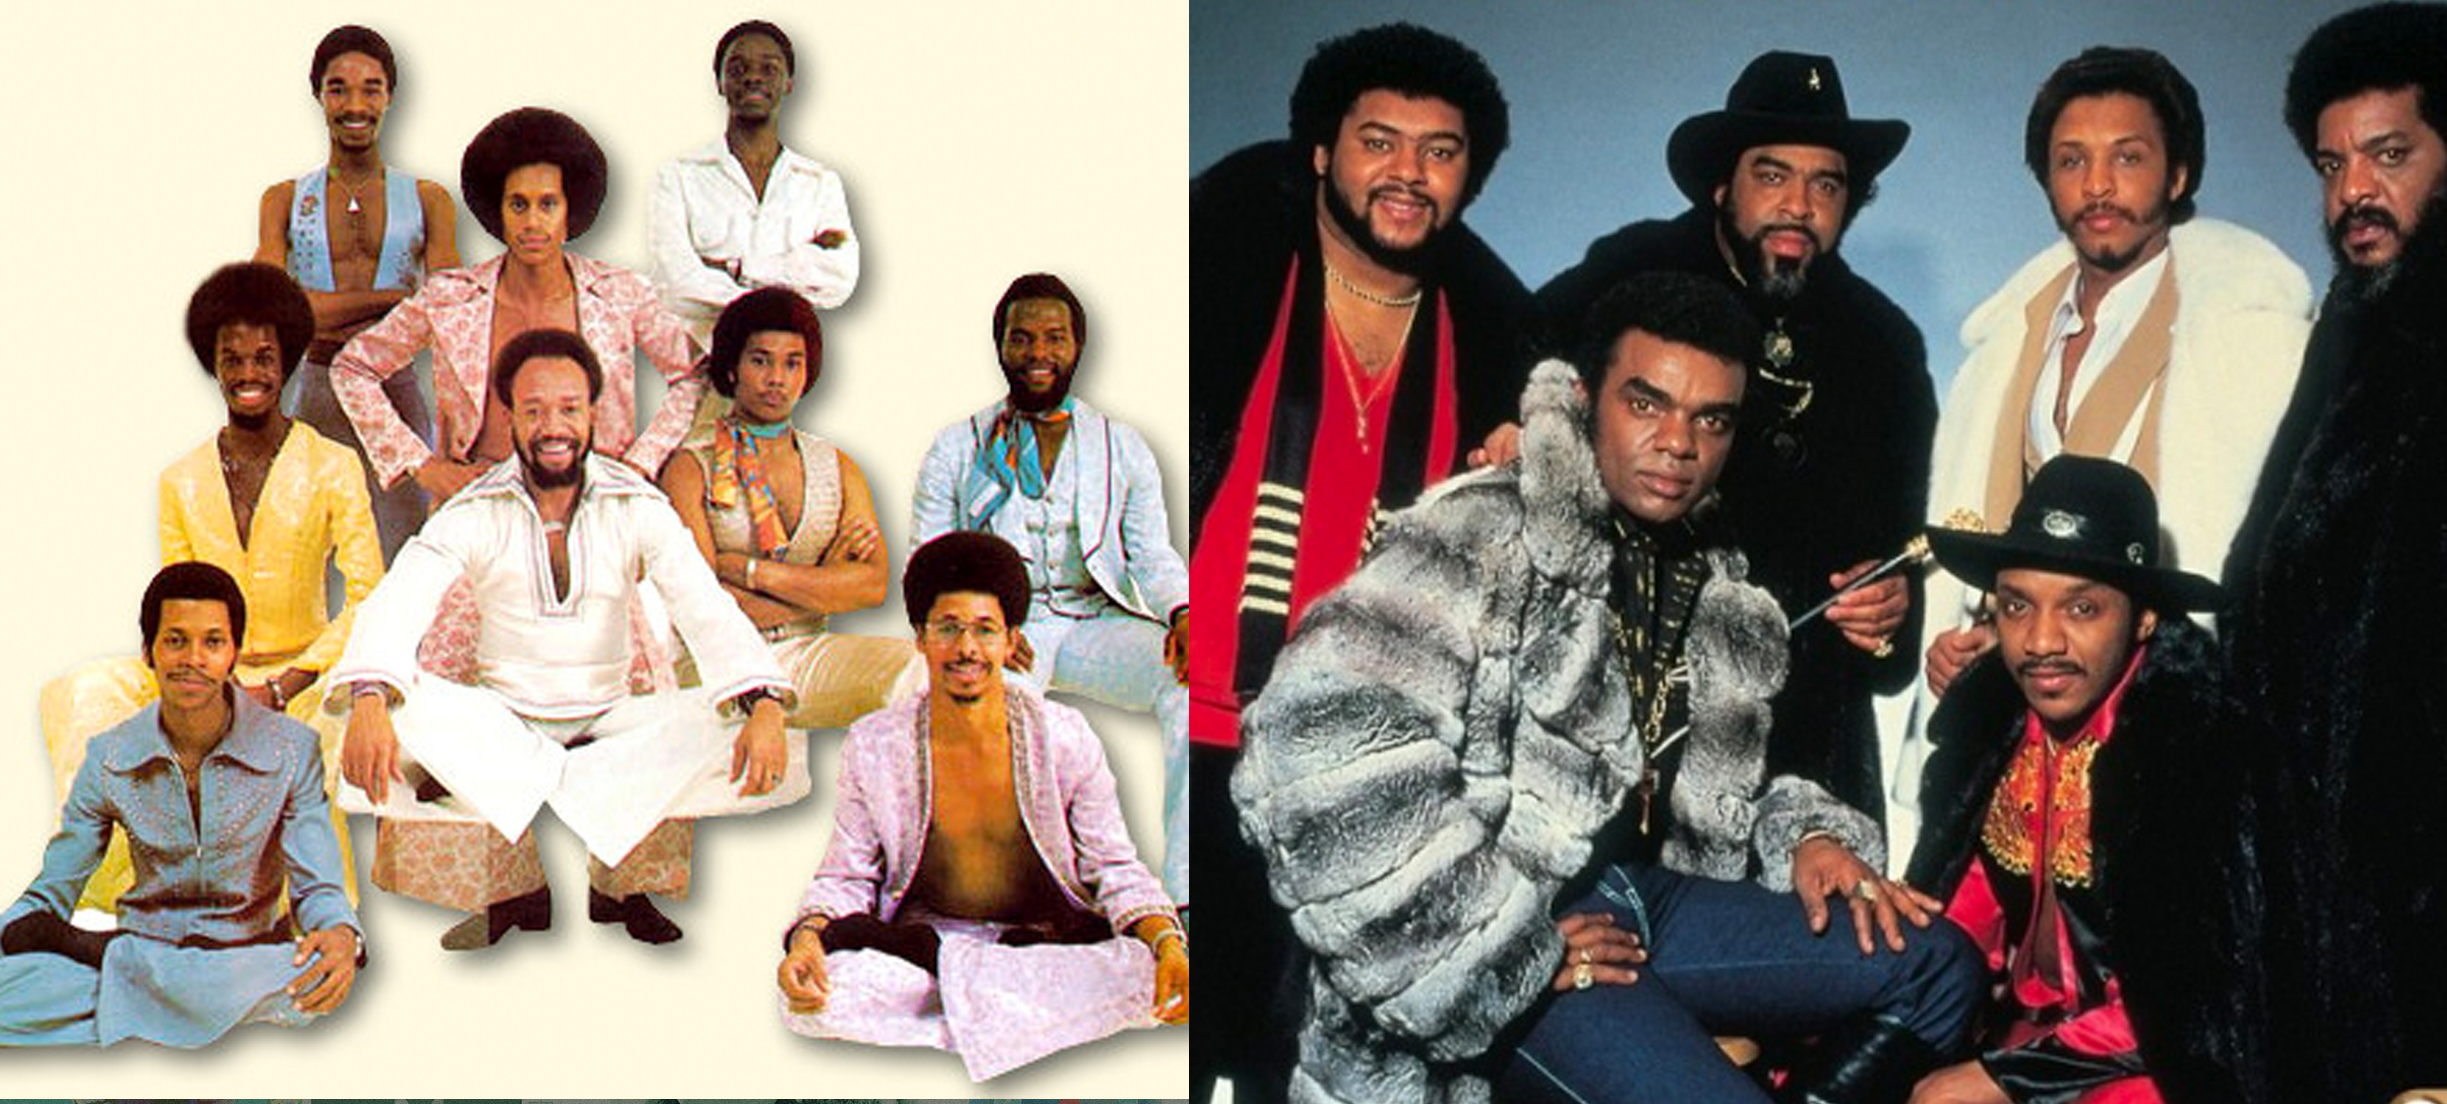 Epische battle: Earth, Wind & Fire versus The Isley Brothers